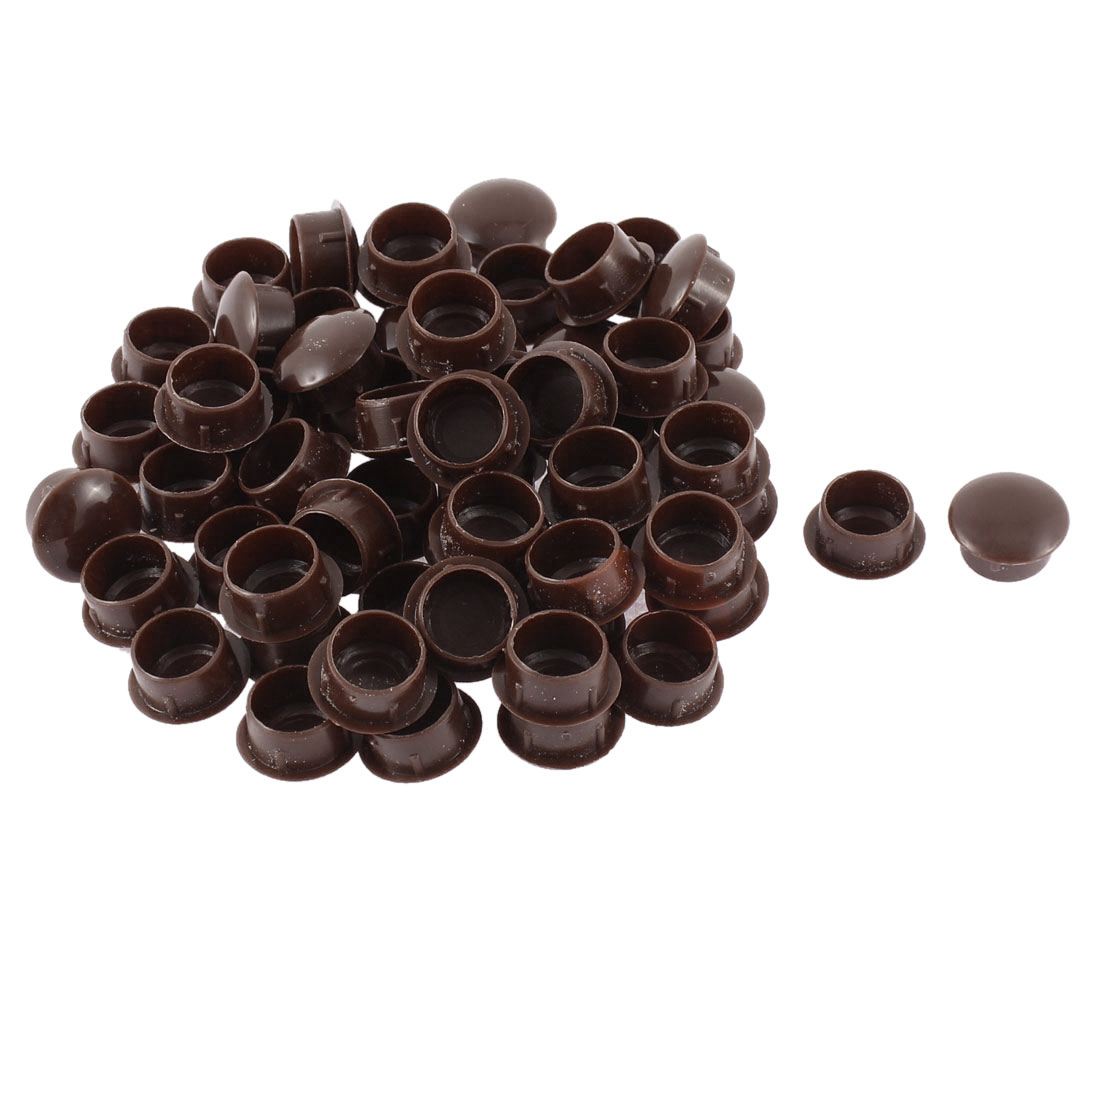 Home Plastic Furniture Hole Cover Caps Tube Insert Coffee Color 14mm Dia 60pcs